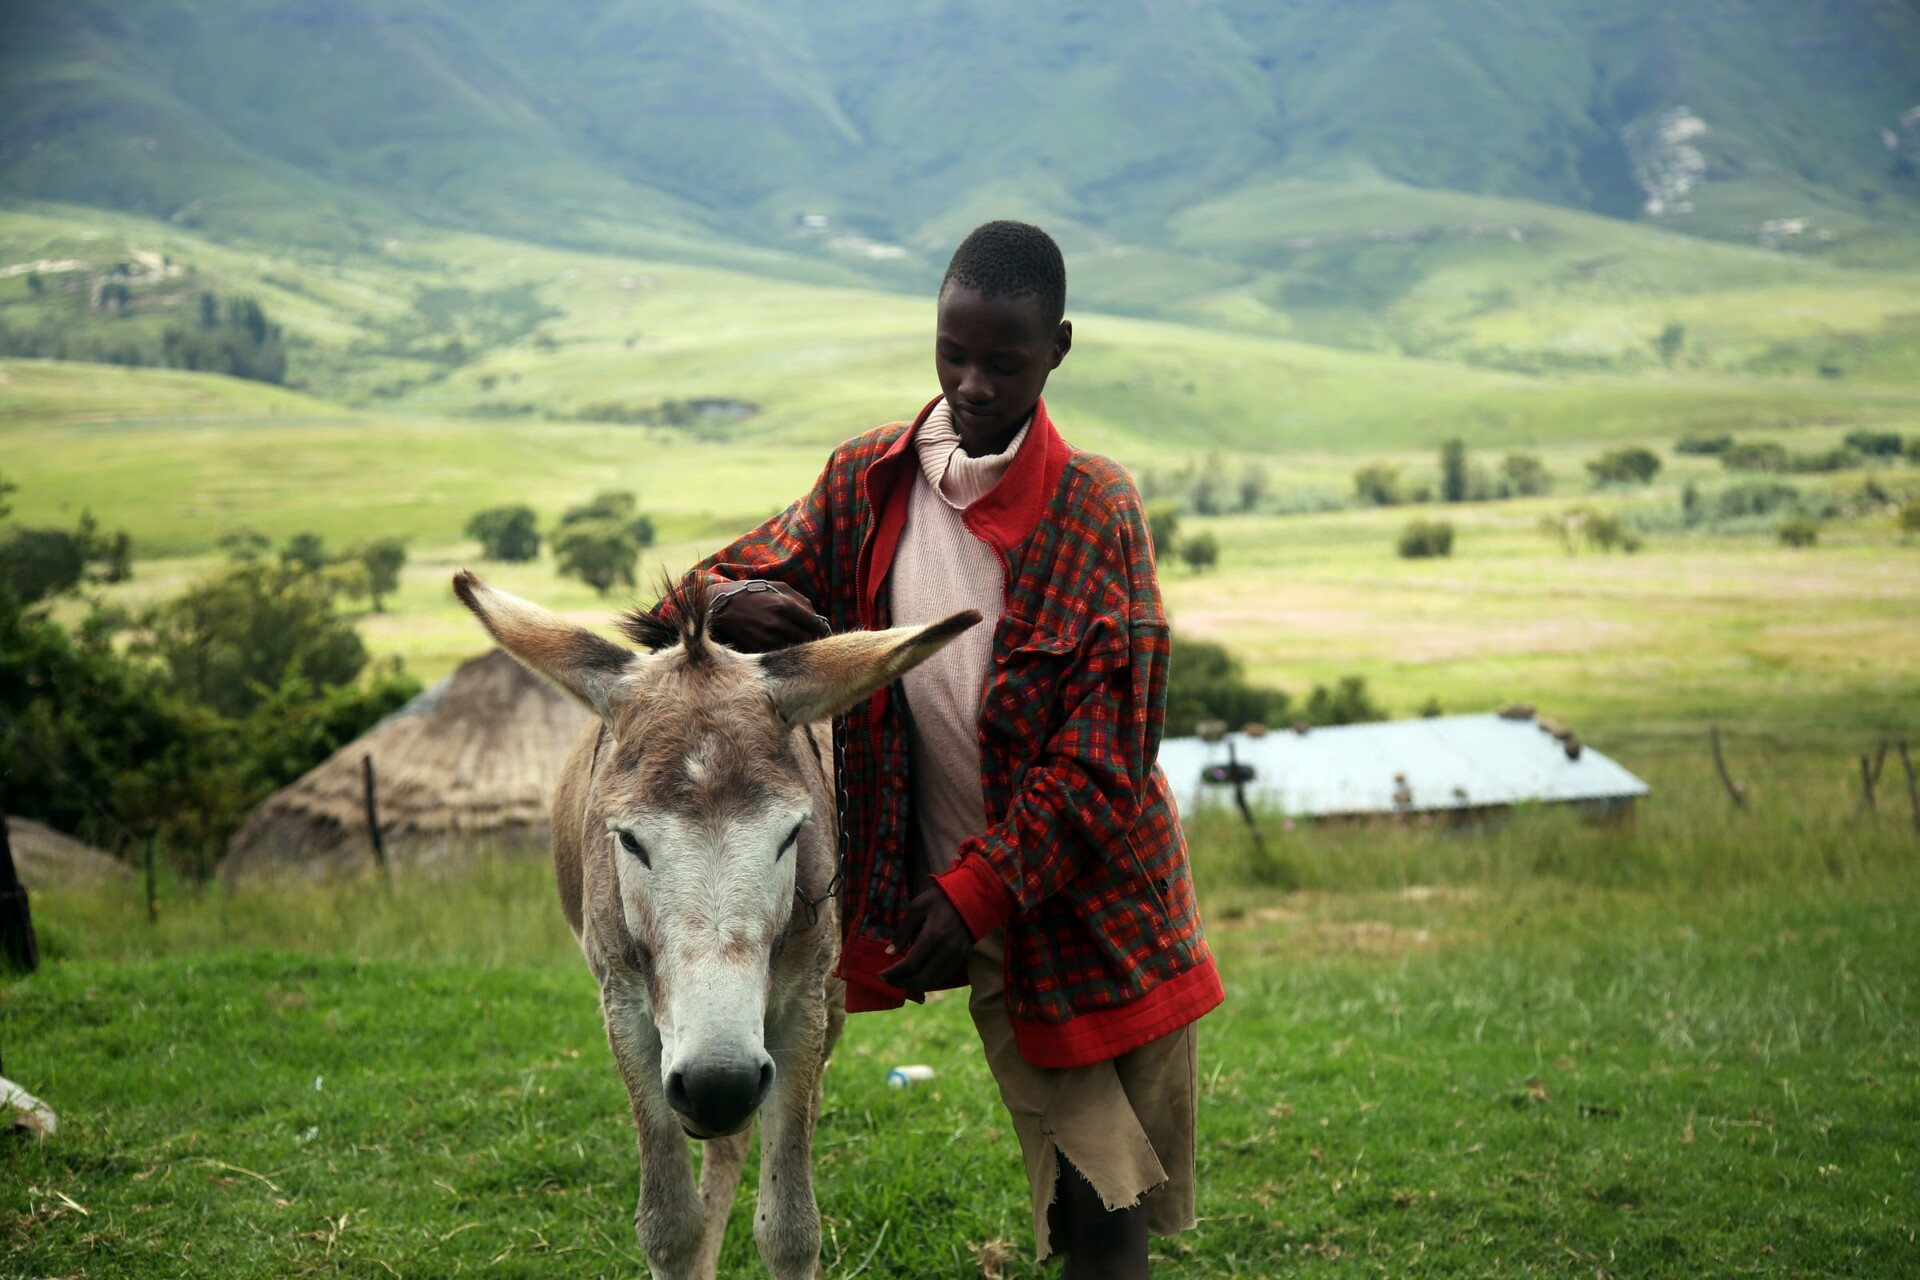 Child leaning on a donkey in the Kingdom of Lesotho